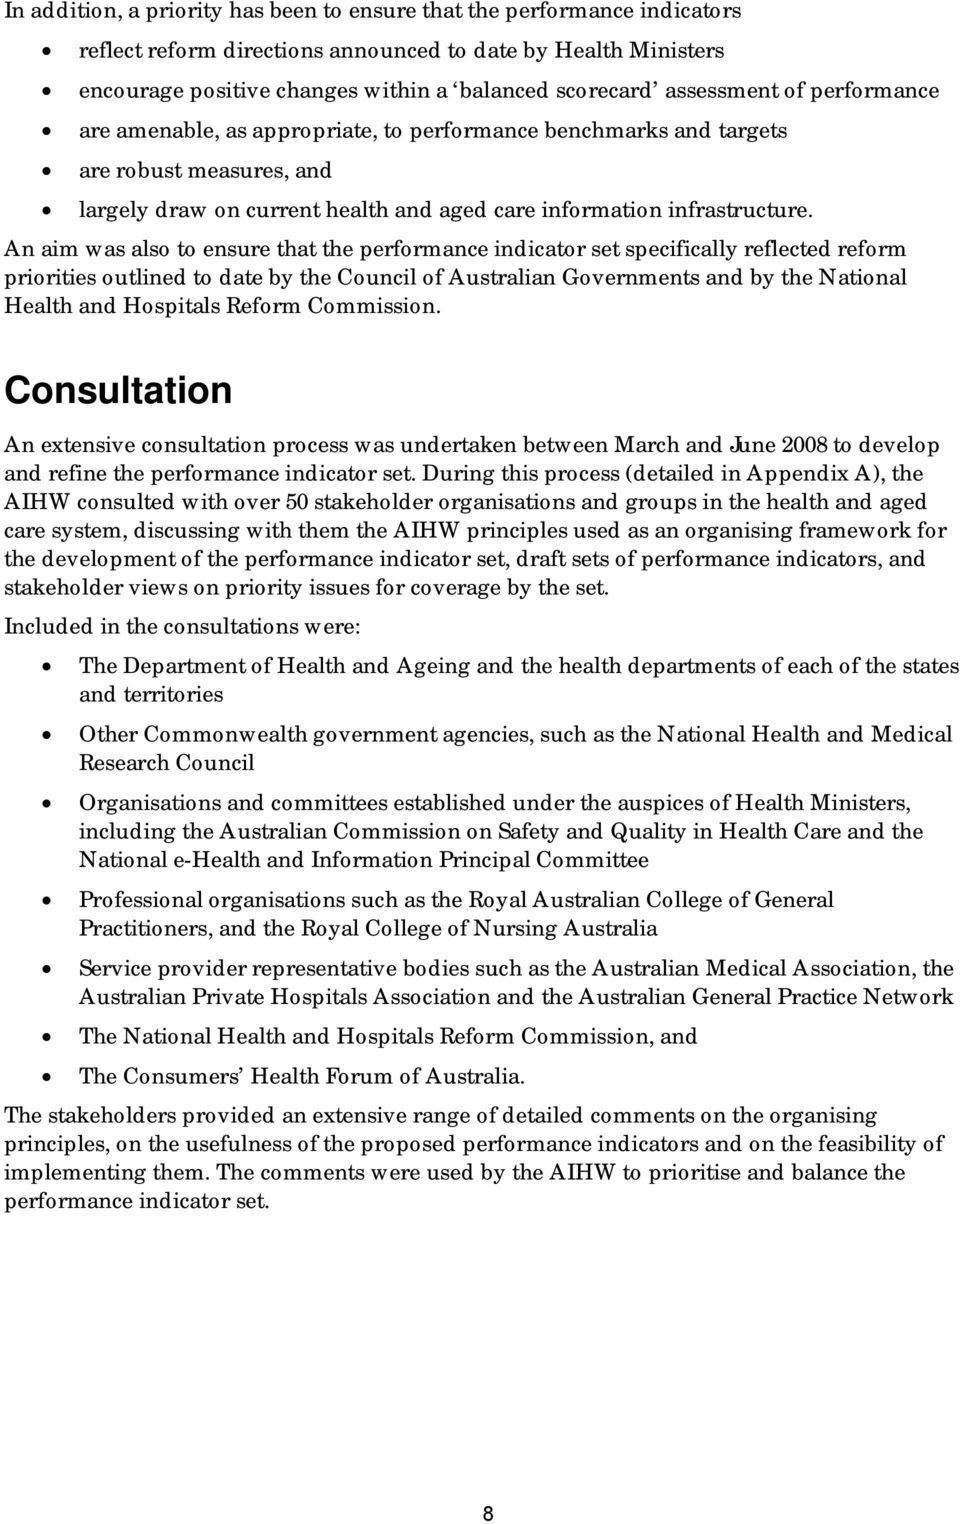 An aim was also to ensure that the performance indicator set specifically reflected reform priorities outlined to date by the Council of Australian Governments and by the National Health and